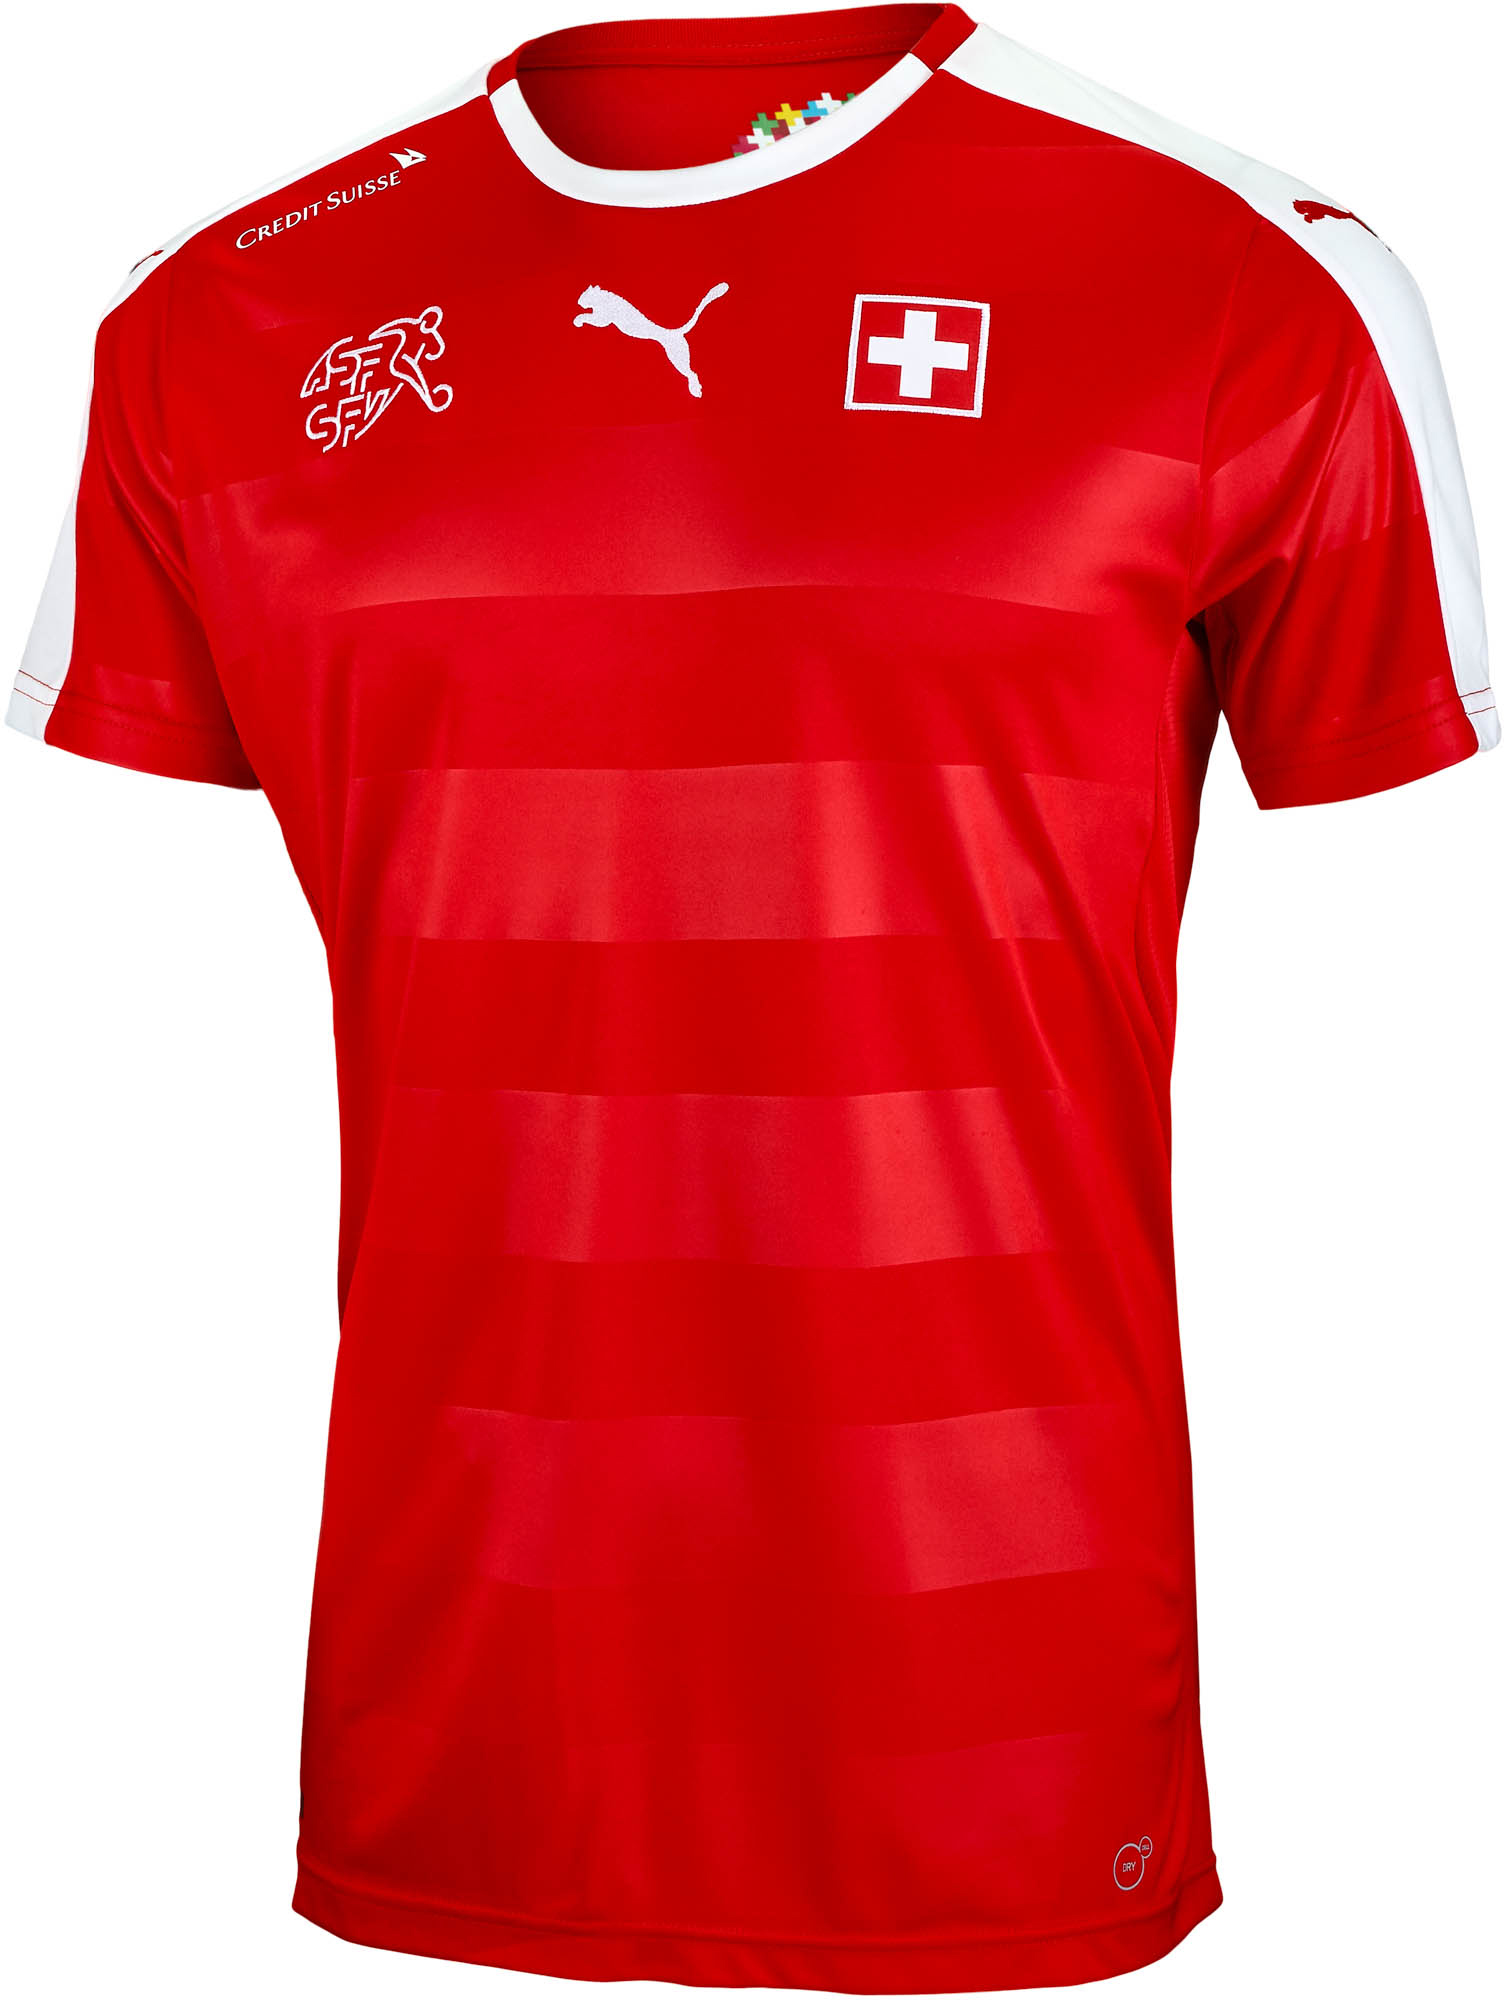 4a4eea888 Puma Switzerland Home Jersey - 2016 Switzerland Soccer Jerseys